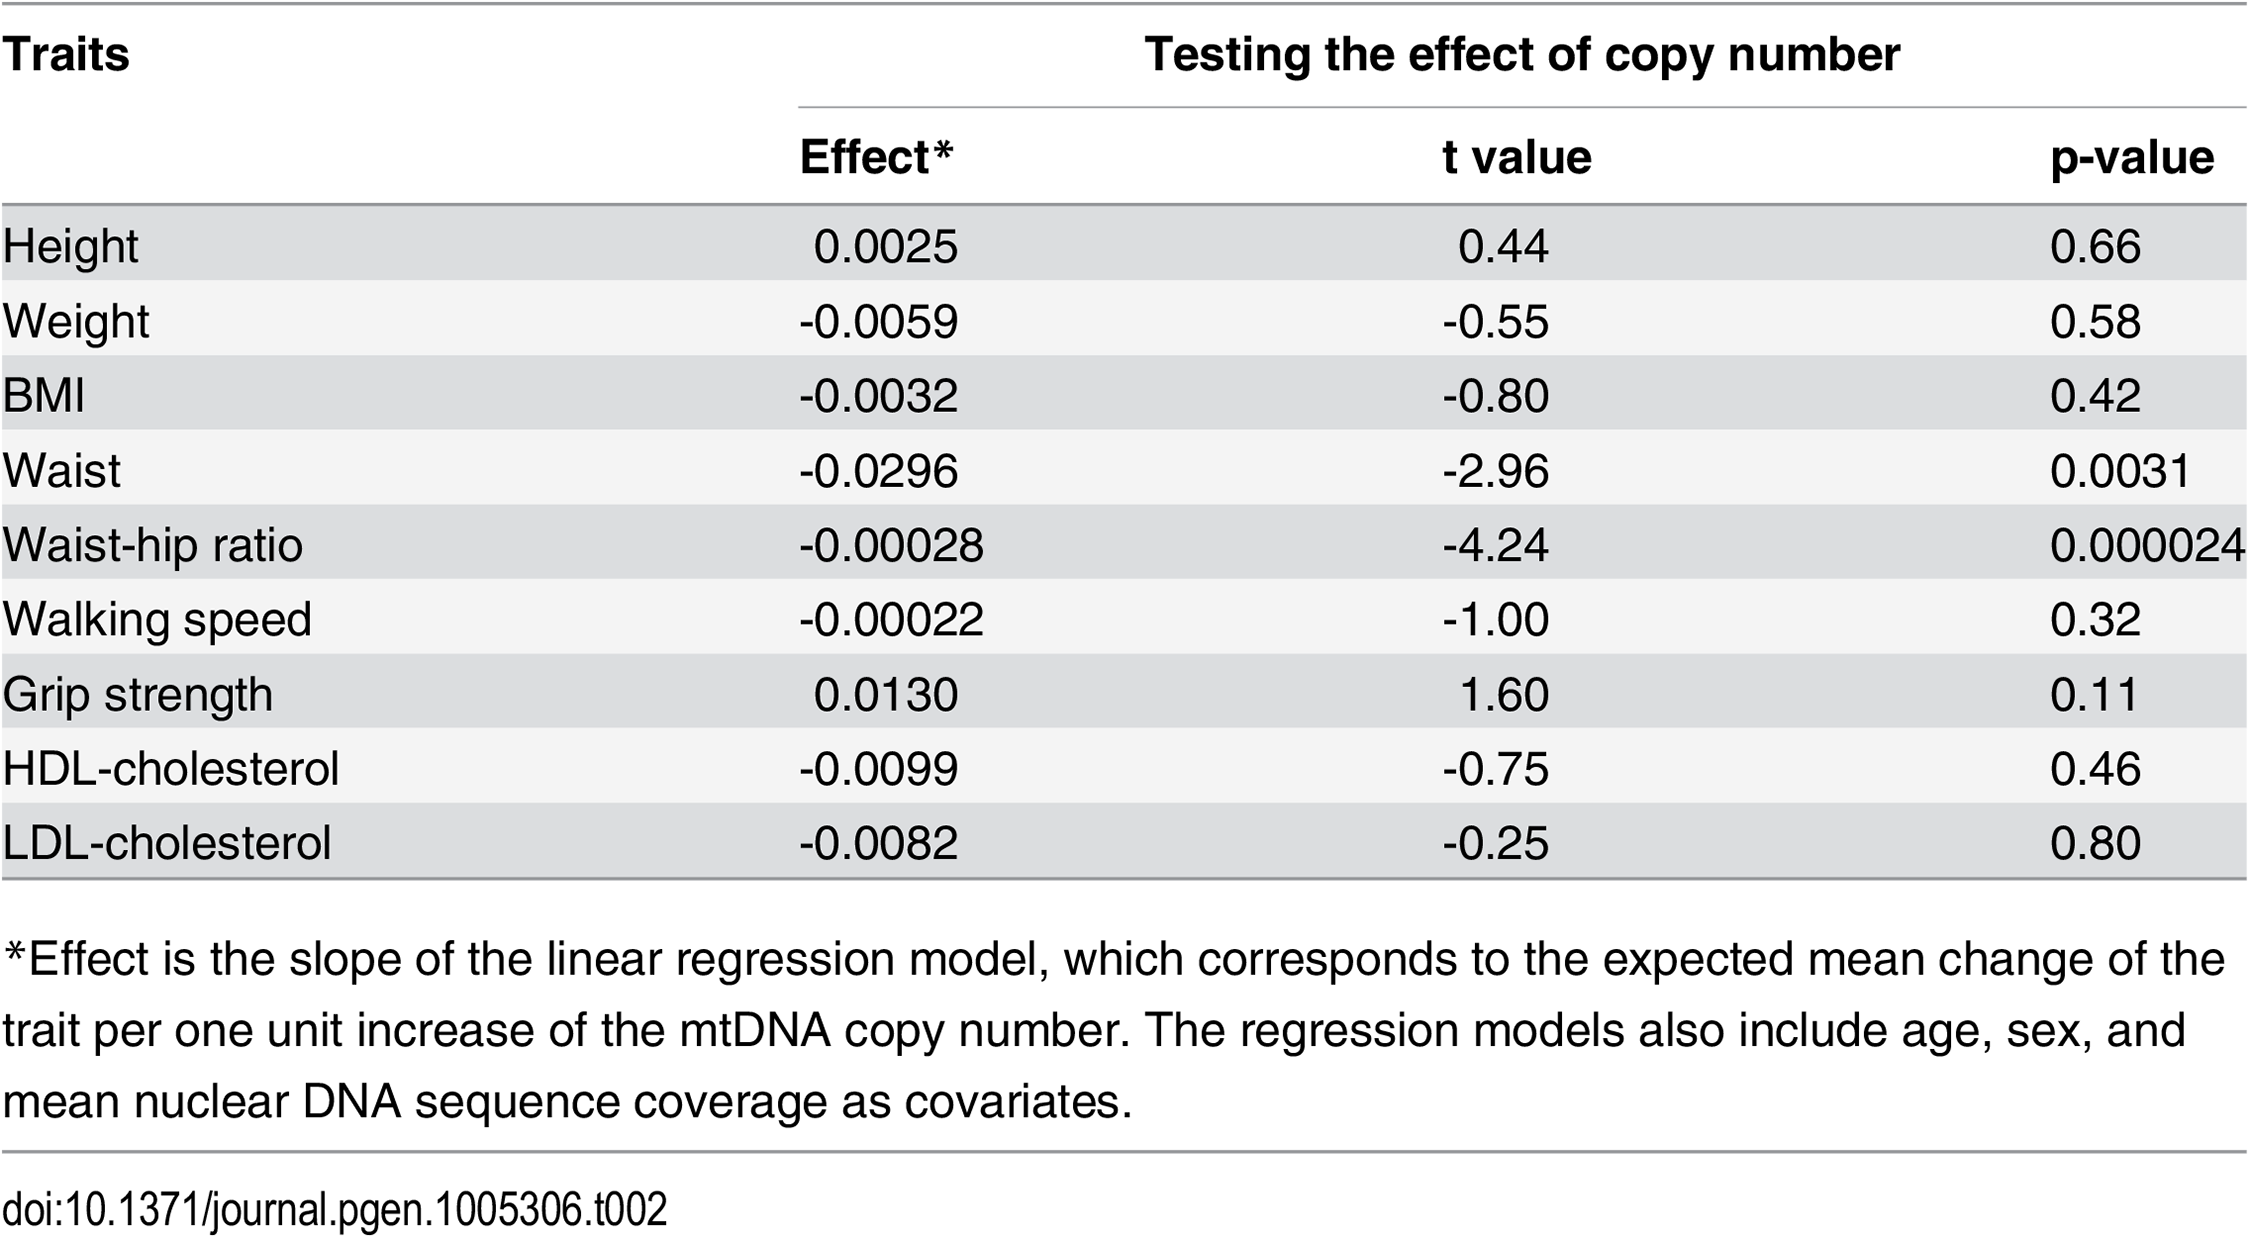 The effect of mtDNA copy number on a set of anthropometric, frailty, and lipid traits.